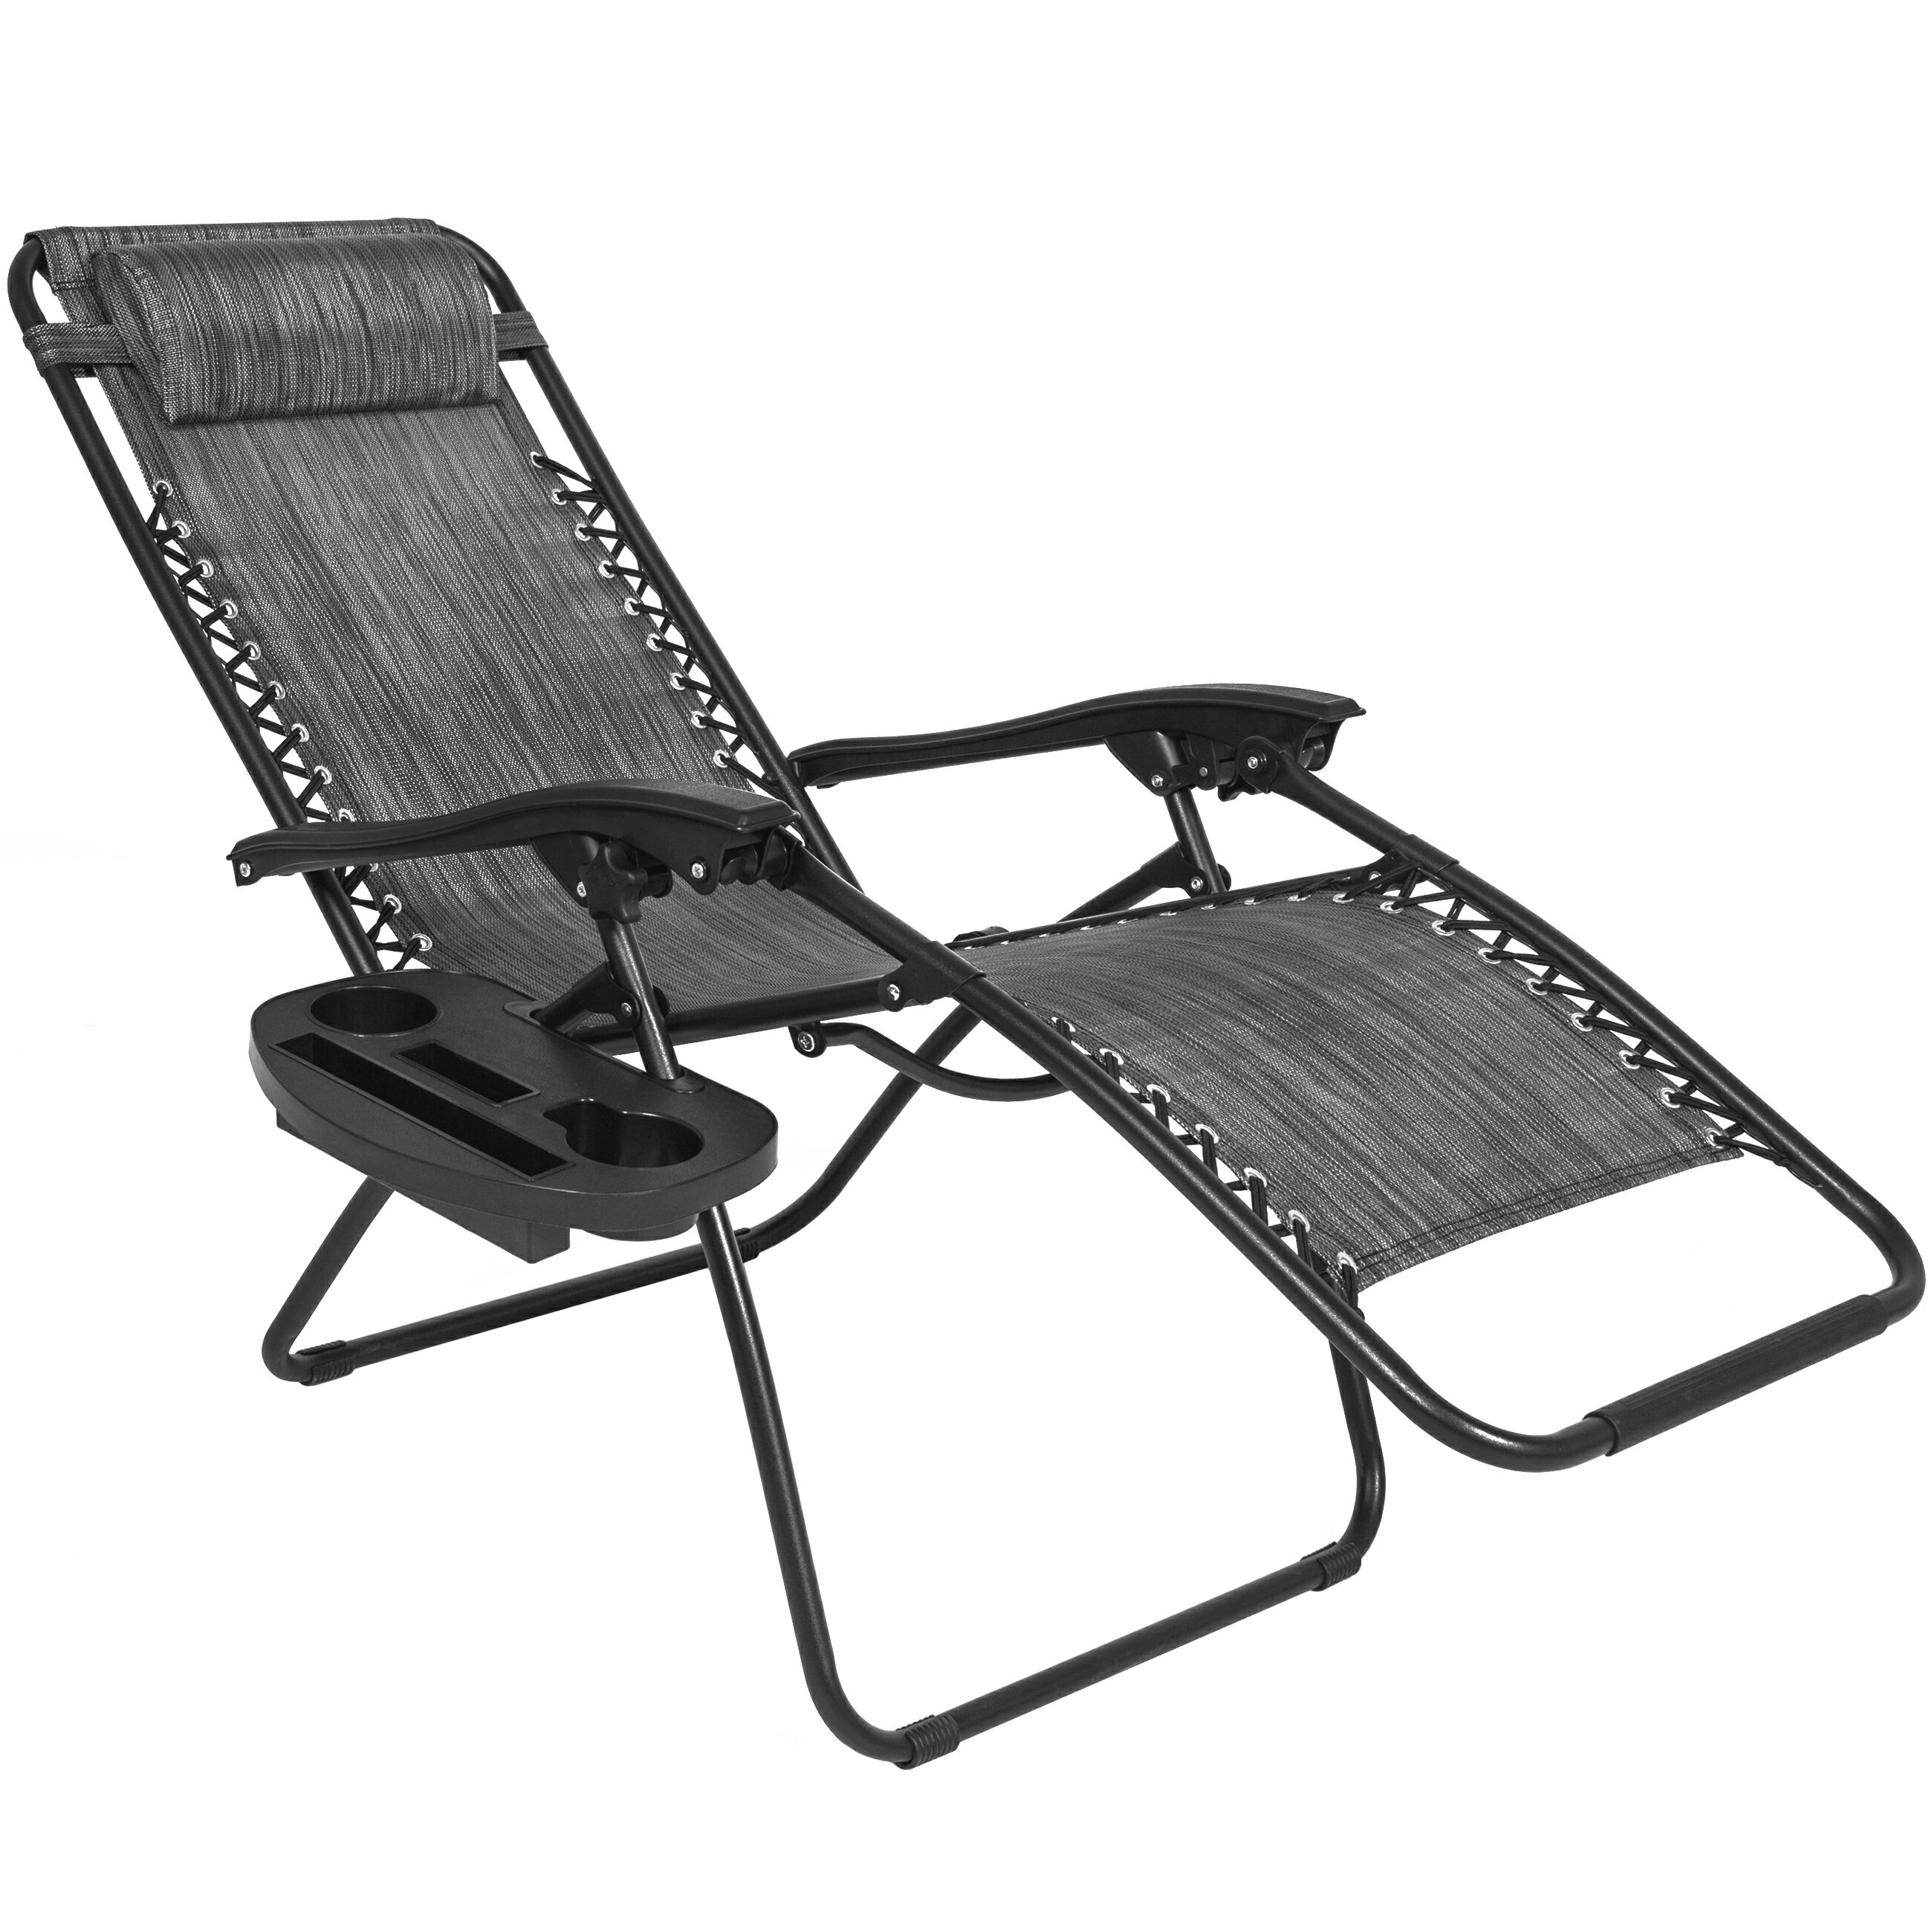 Best Choice Products Set Of 2 Adjustable Zero Gravity Lounge Chair  Recliners For Patio, Pool